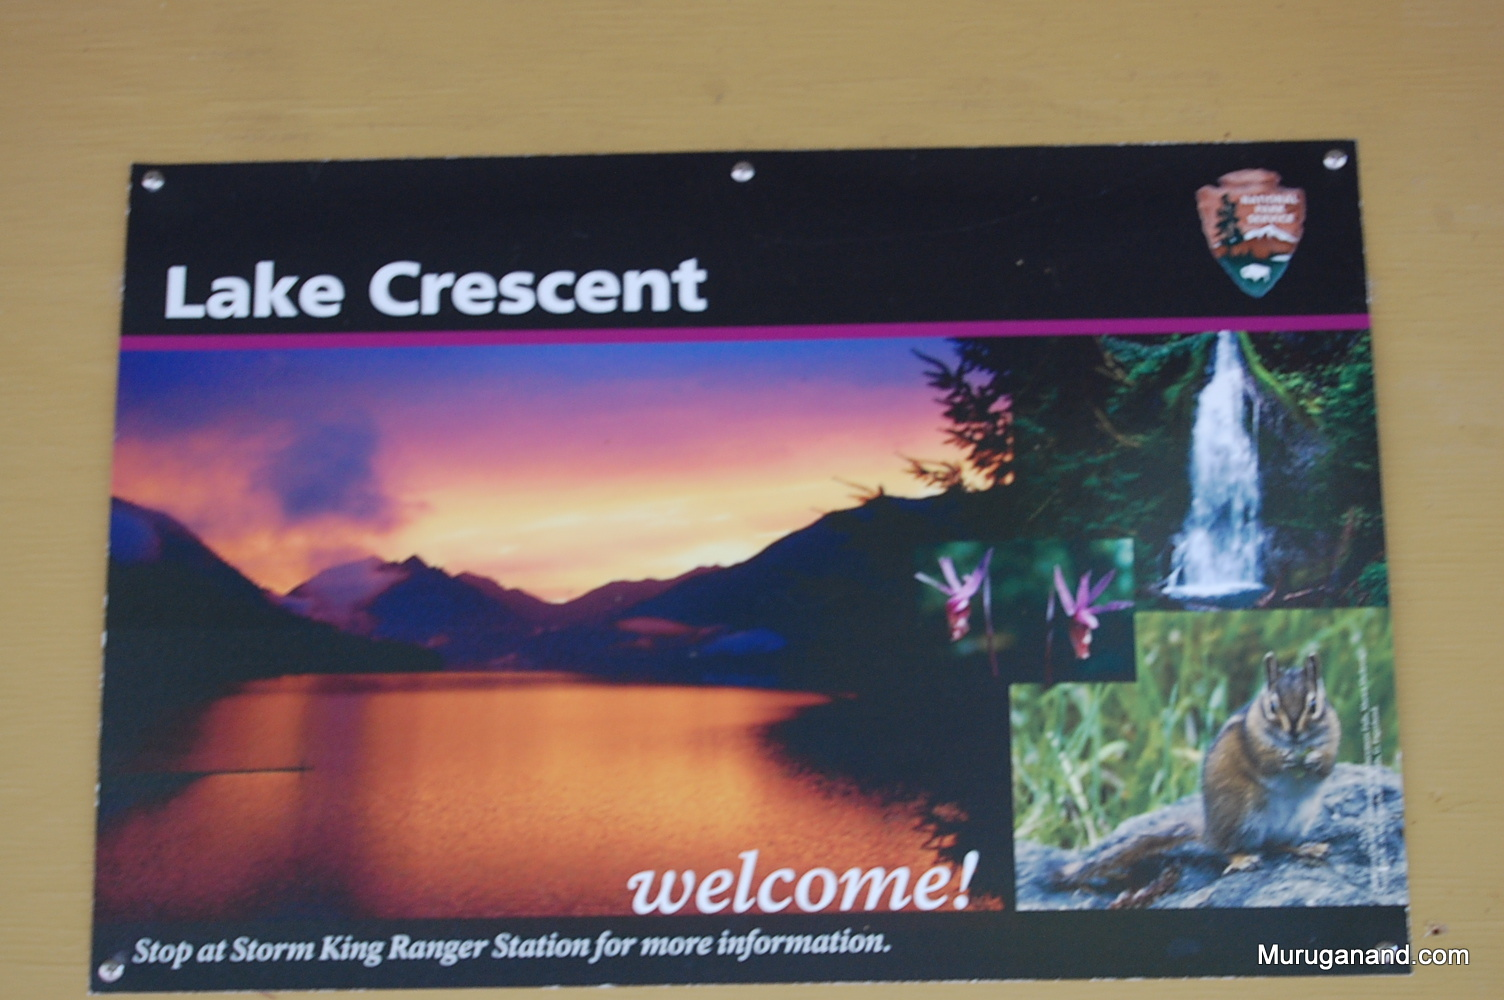 Lake Crescent is a popular attraction to observe scenery, fishing and kayaking.